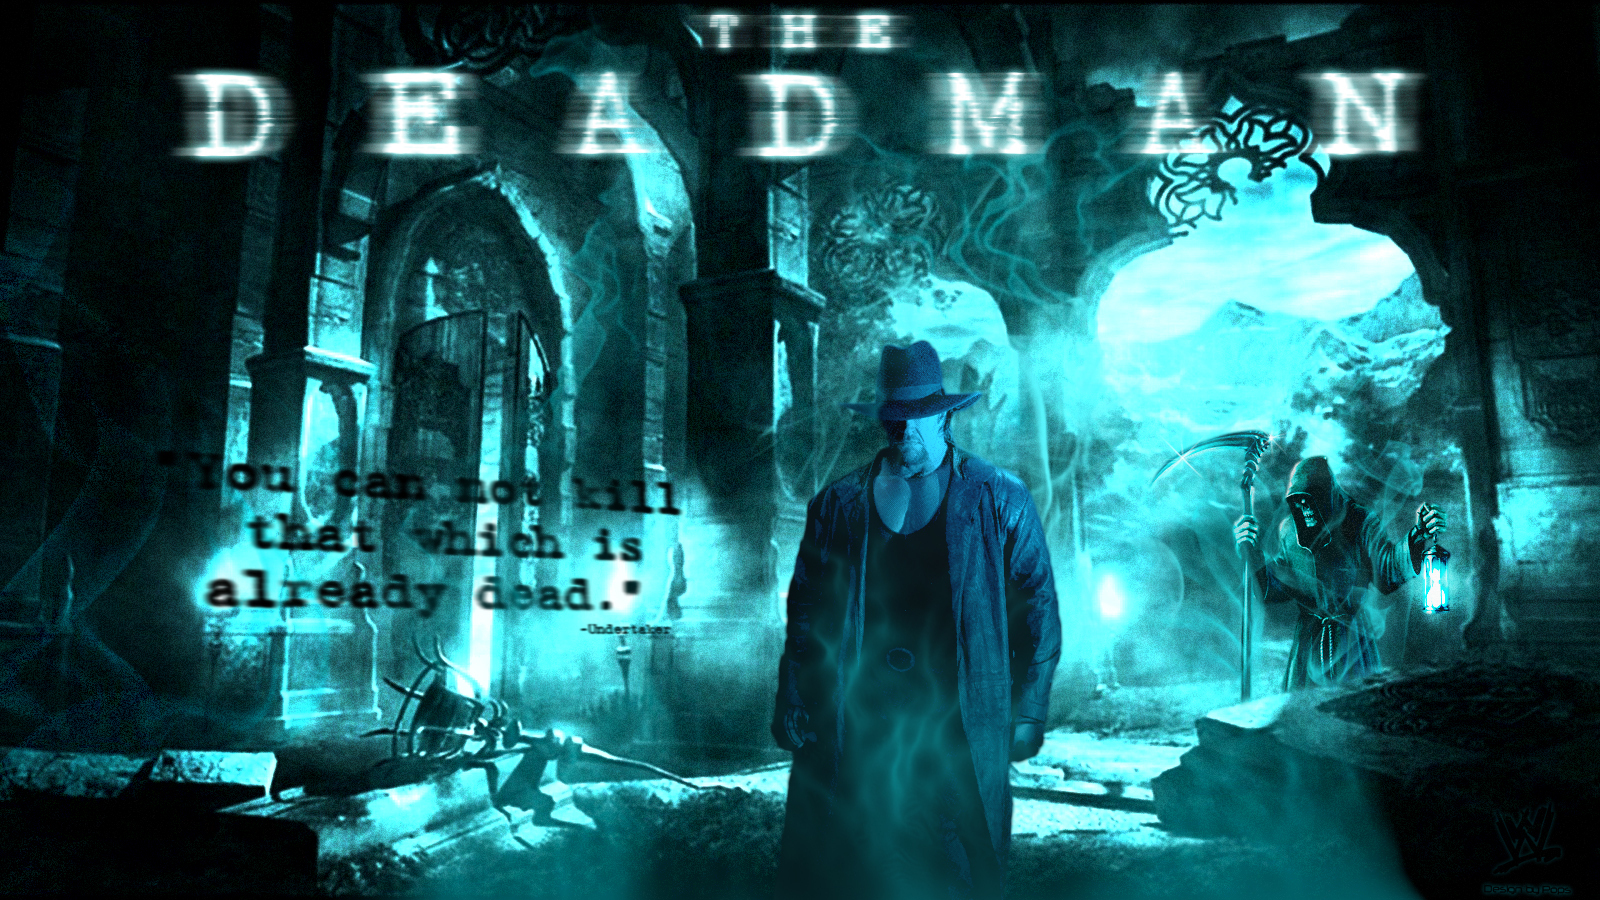 undertaker images deadman hd wallpaper and background photos